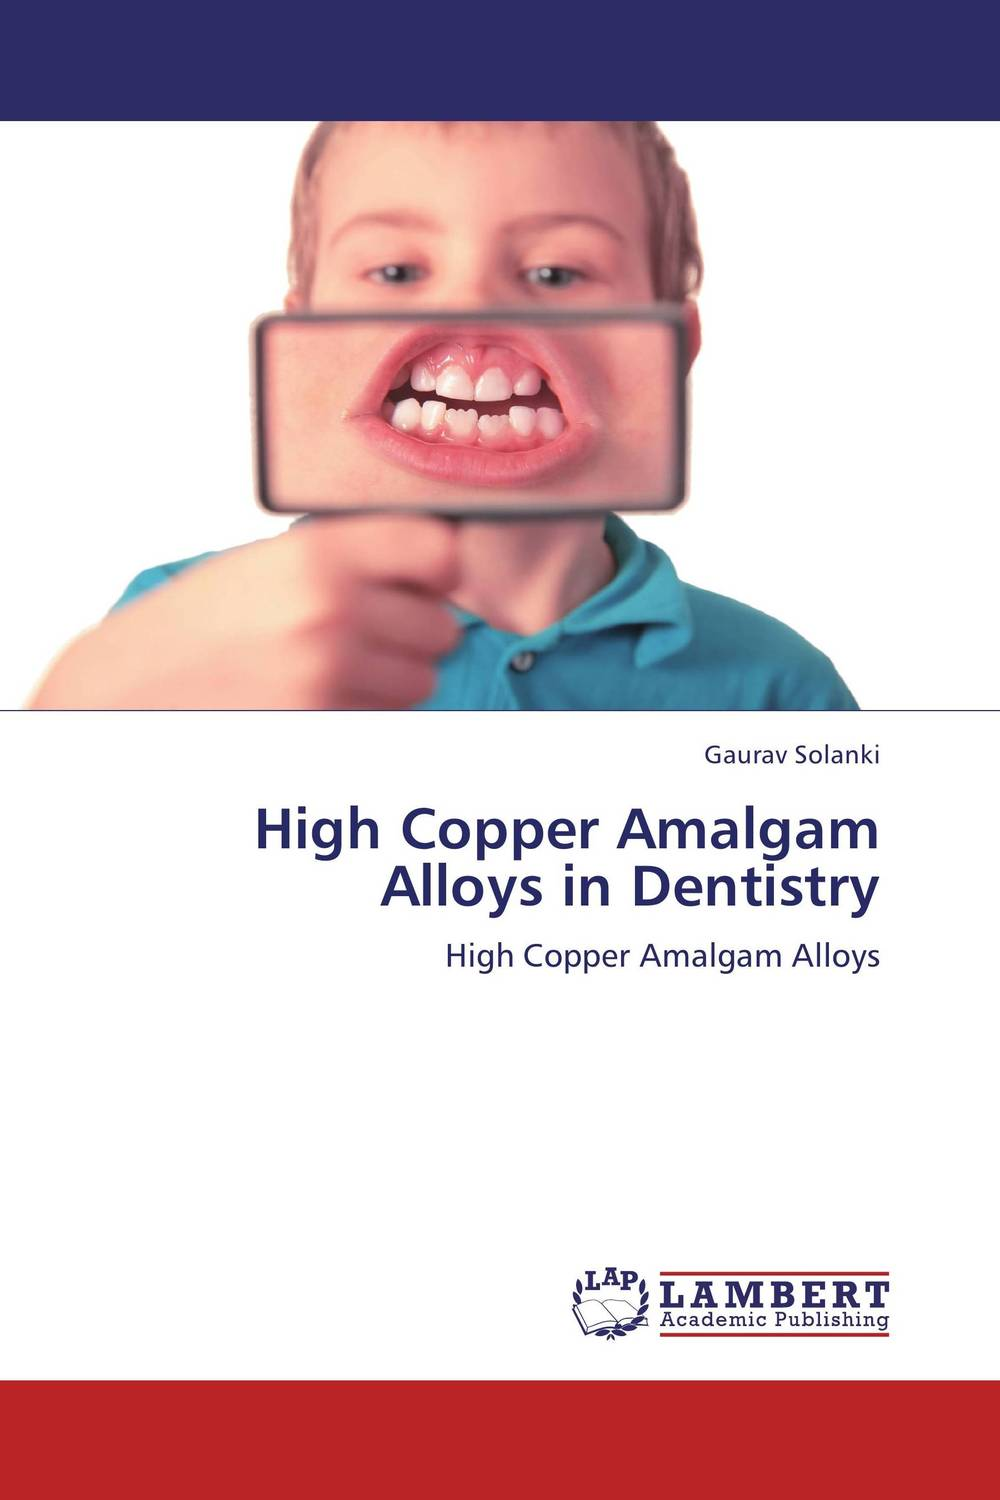 High Copper Amalgam Alloys in Dentistry купить